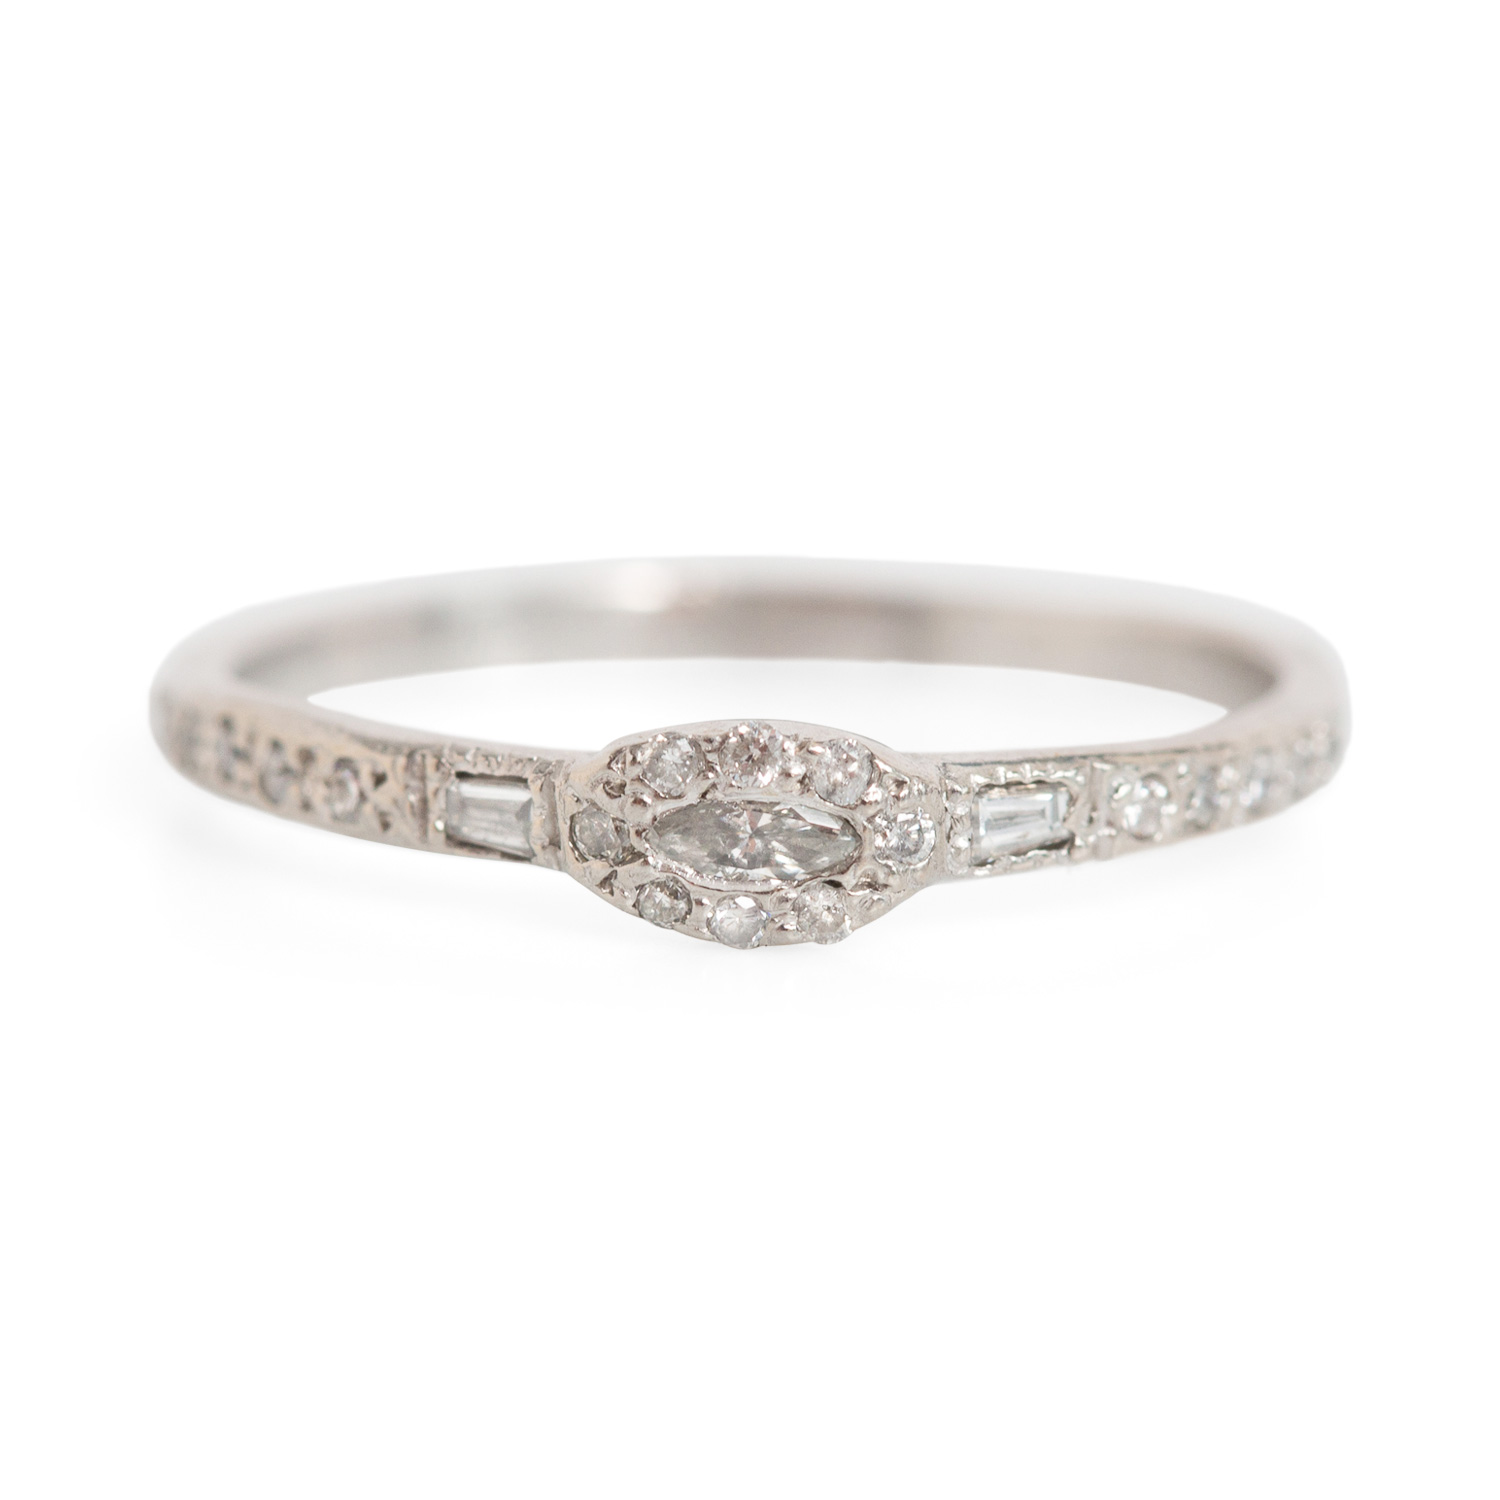 engagement jewelry alberta exchange diamond rings solitaire in calgary details lucida